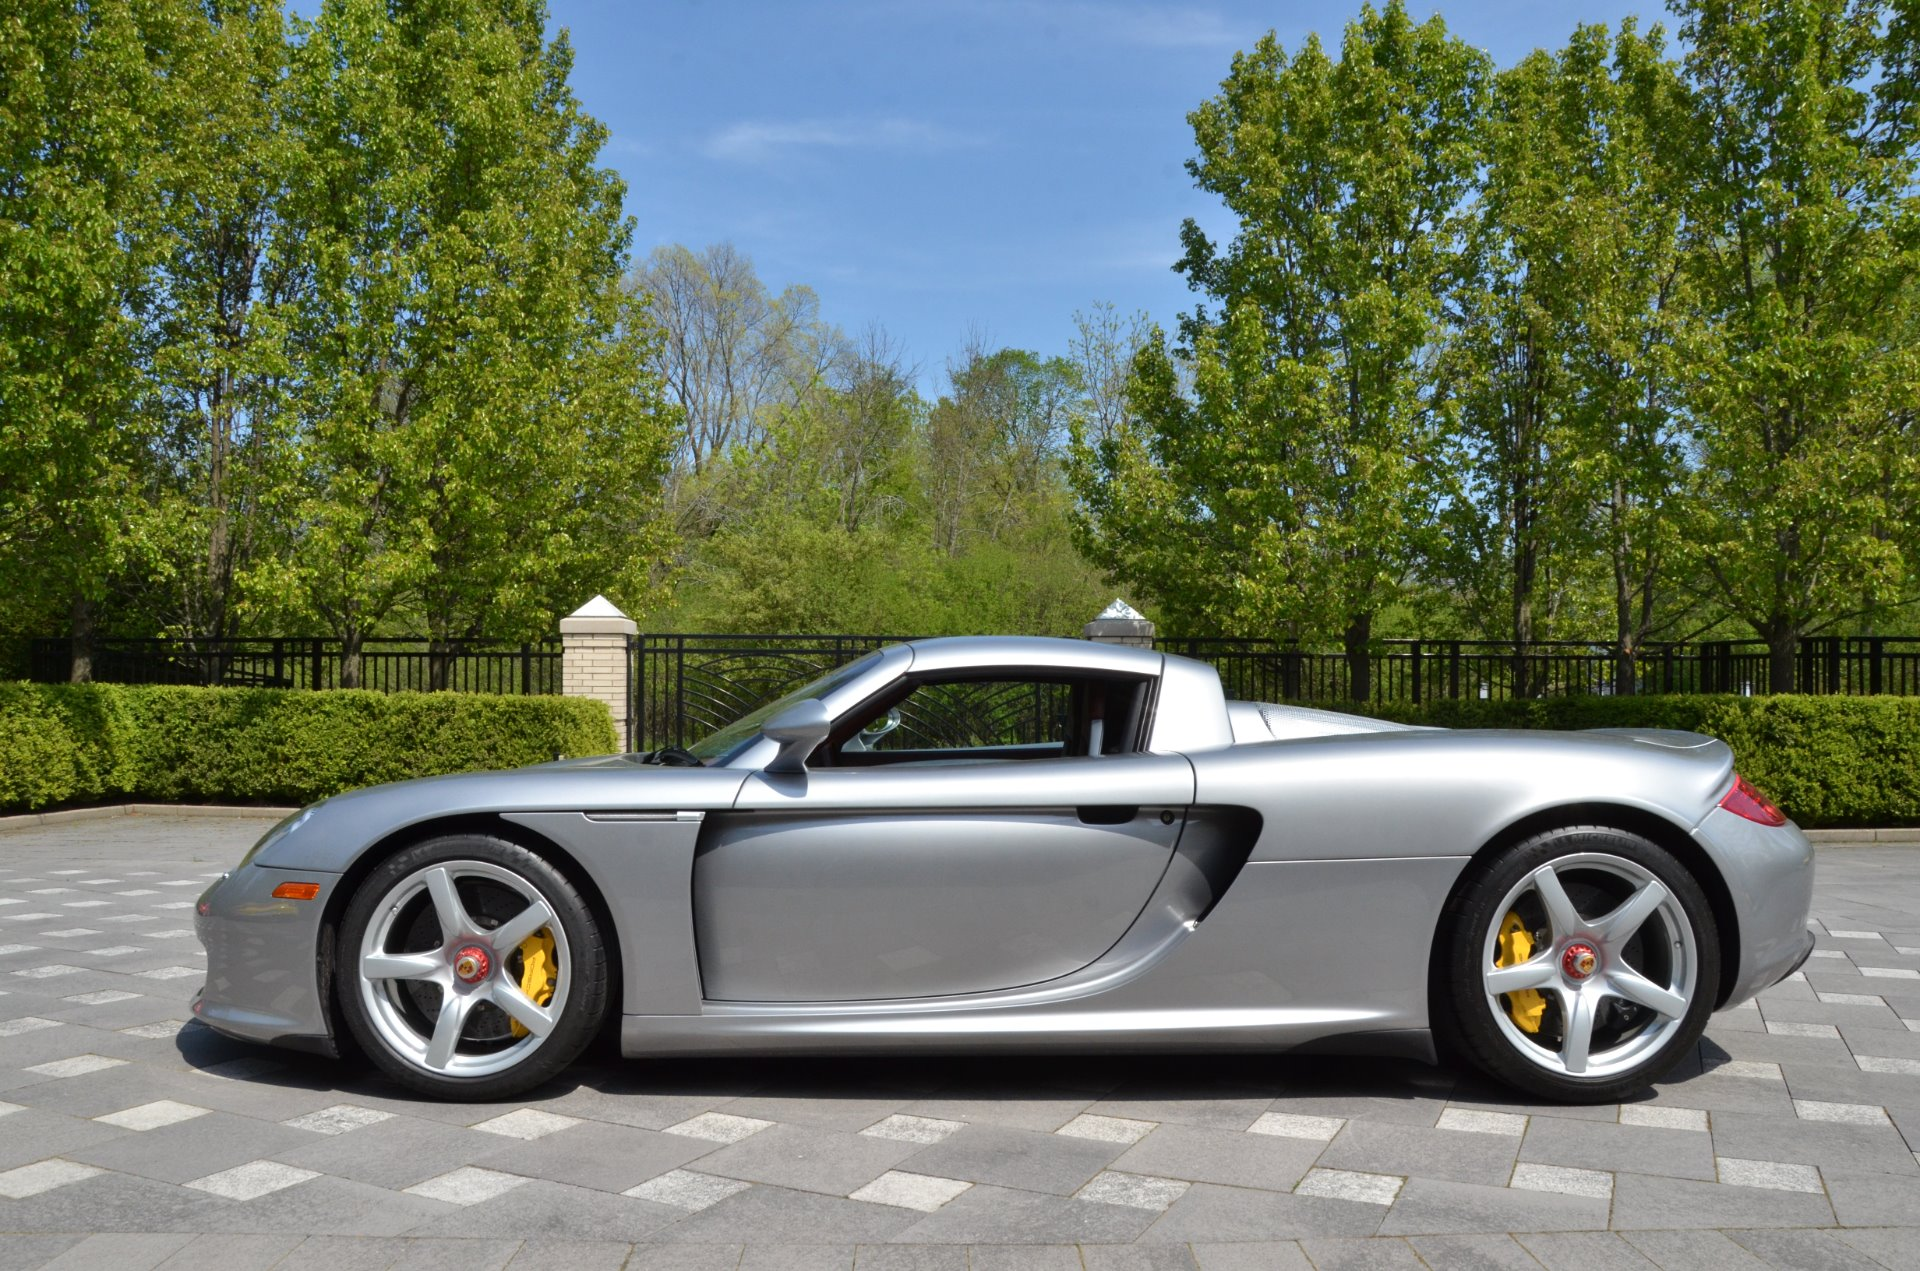 2004 porsche carrera gt stock gc mir134 for sale near chicago il il porsche dealer. Black Bedroom Furniture Sets. Home Design Ideas